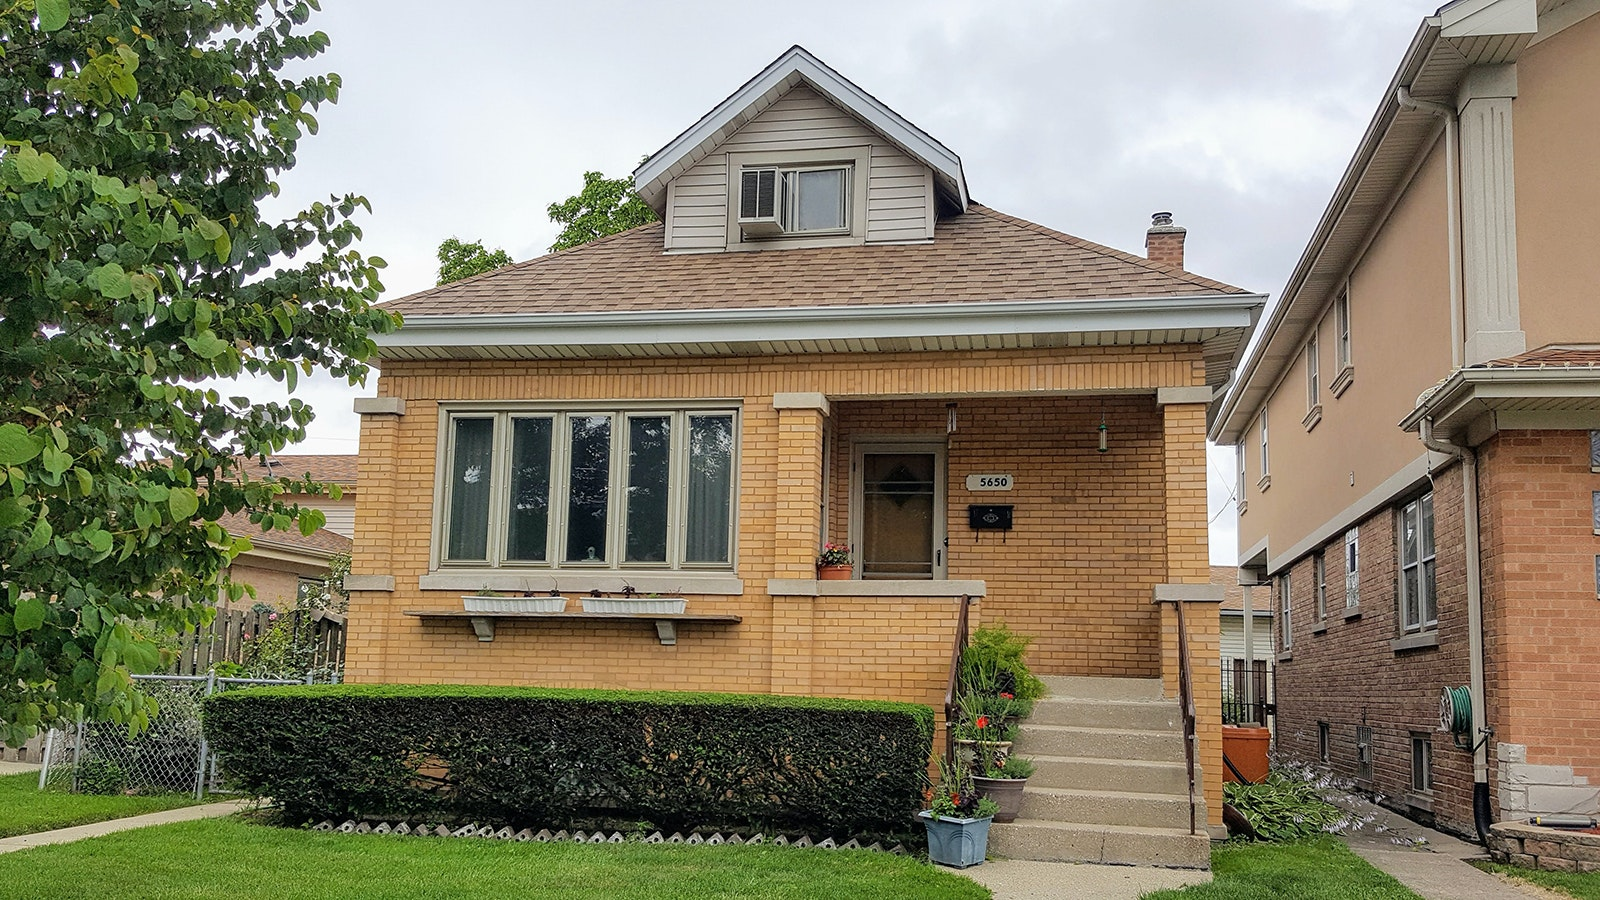 Bunk down in this no-frills but clean and affordable home set within minutes of Chicago O'Hare.